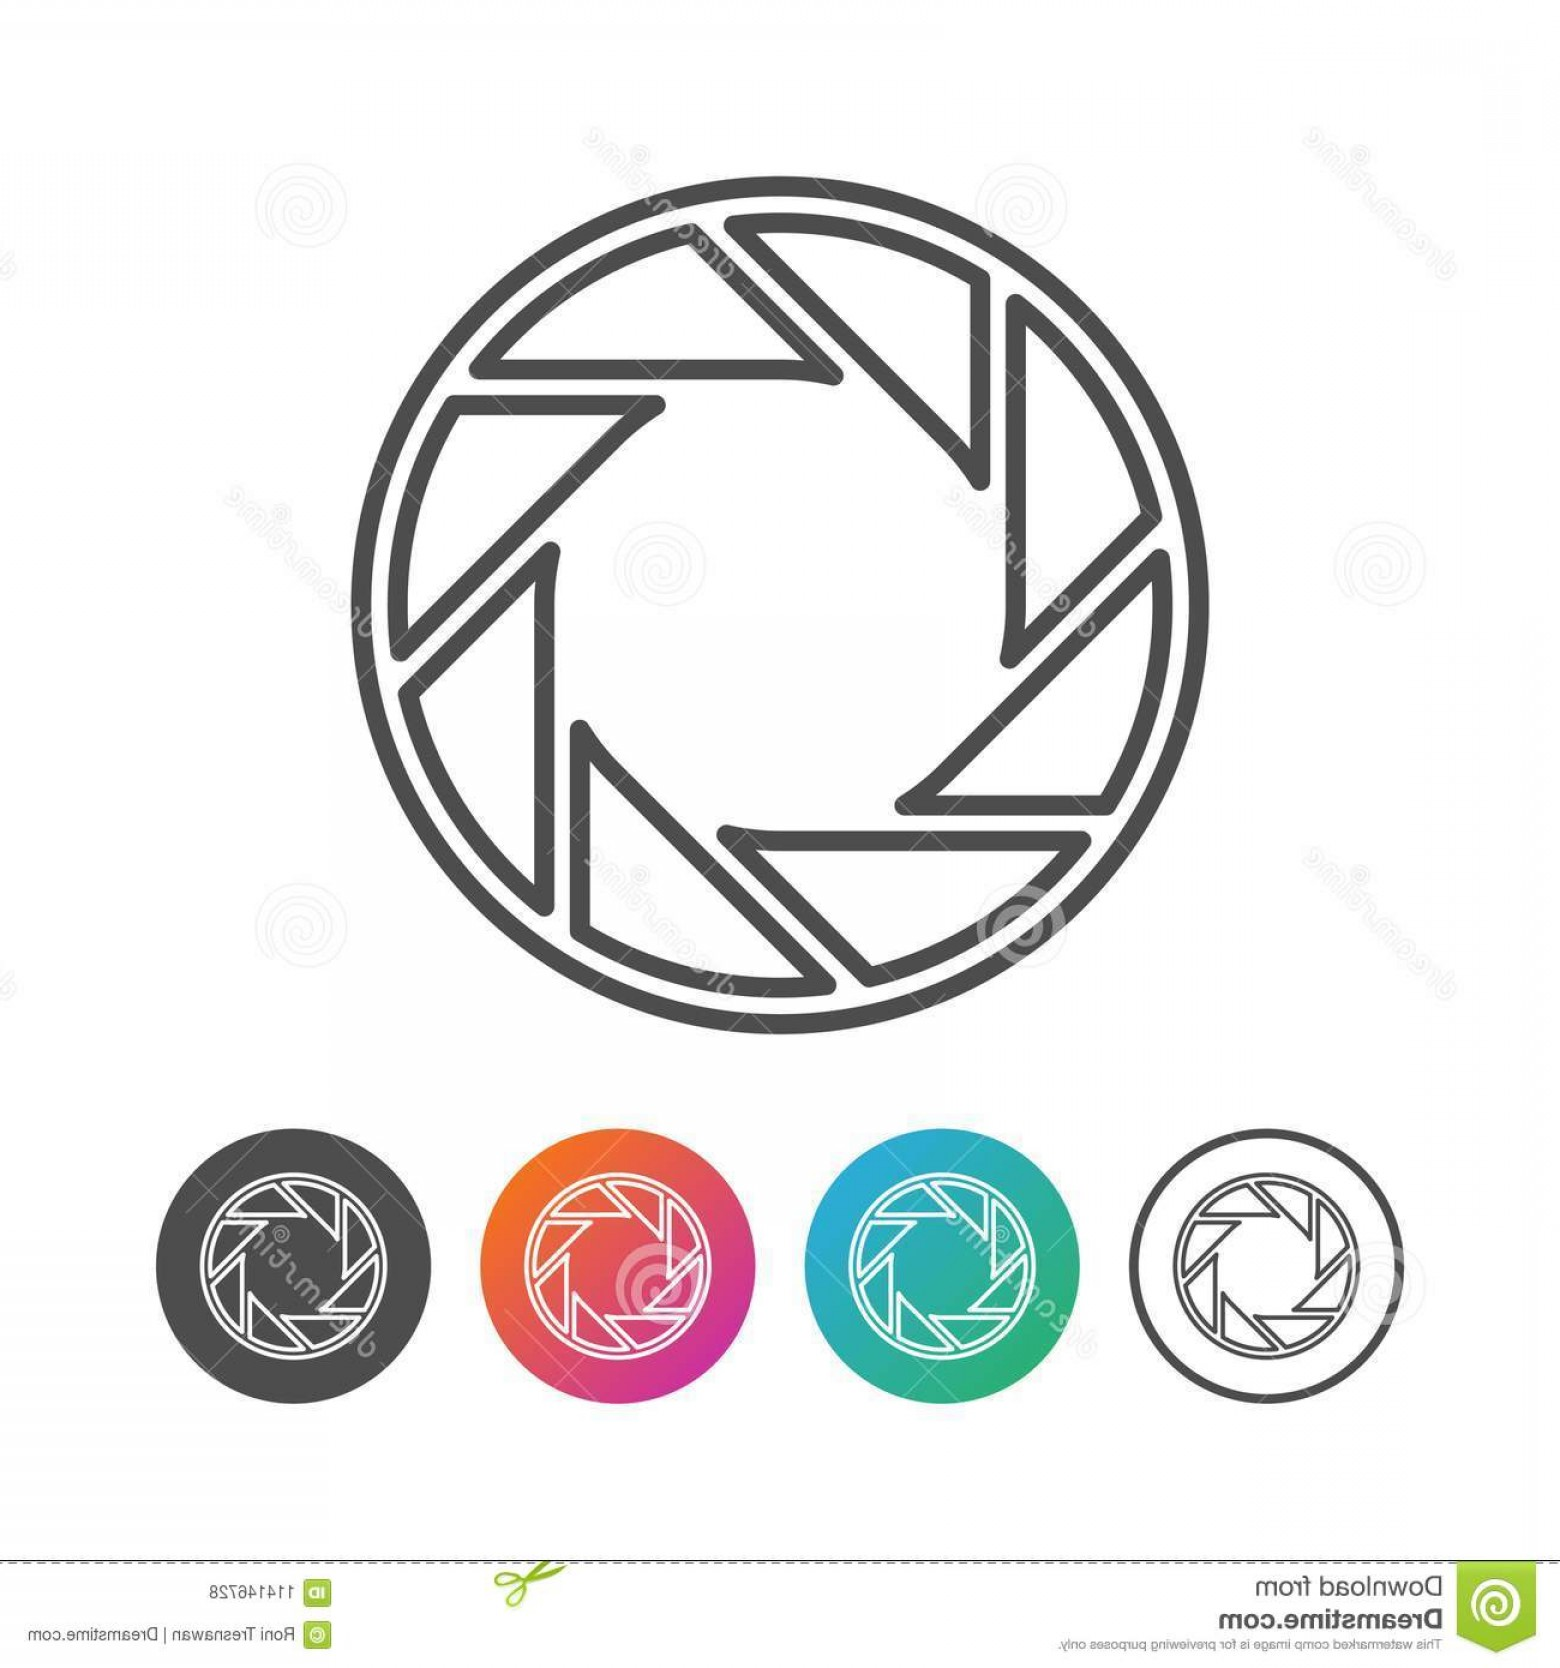 Camera Outline Vector Graphic: Camera Shutter Outline Icon Symbol Design Set Vector Graphic Logo Image